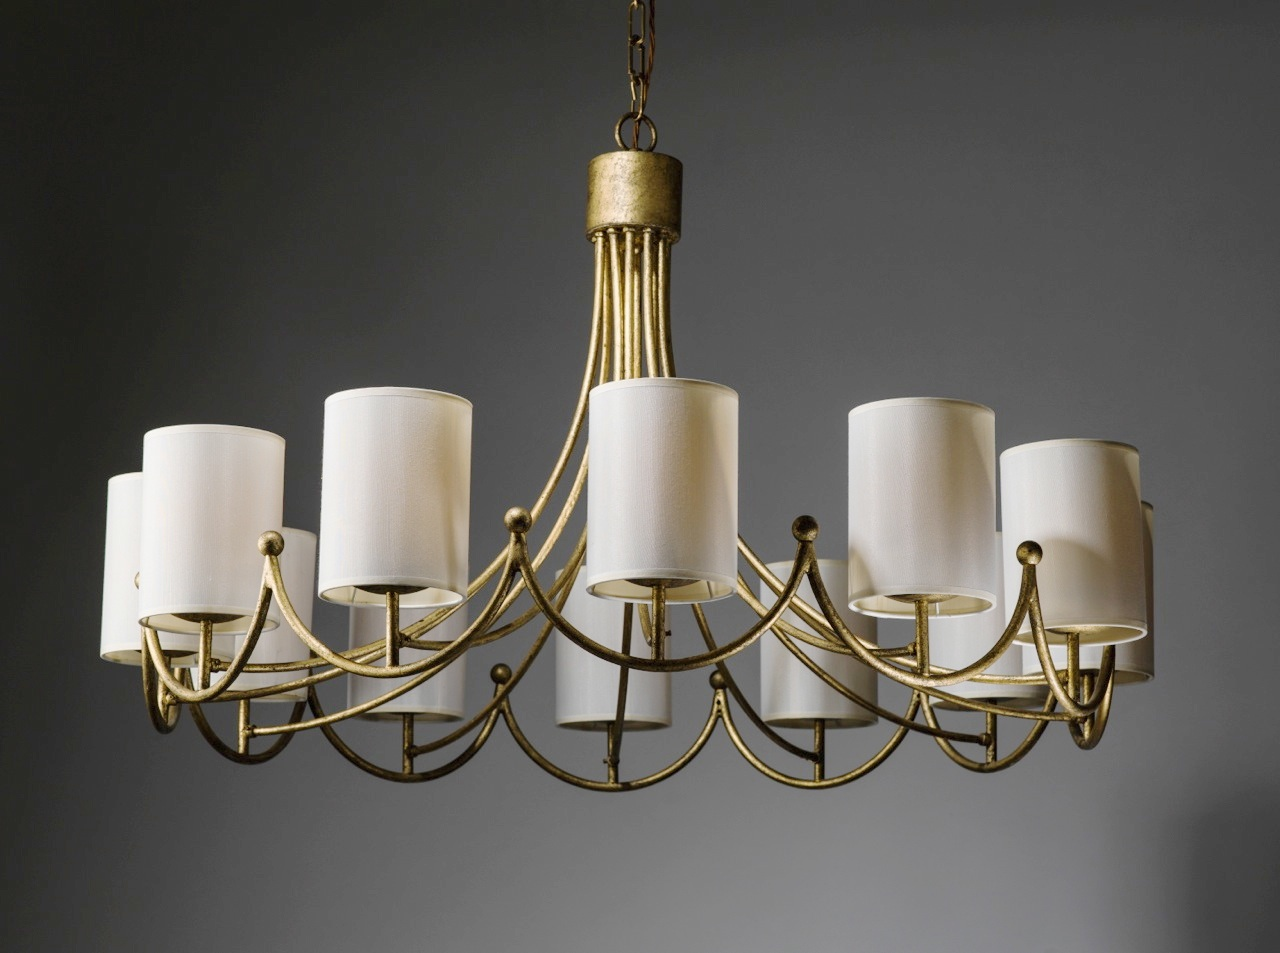 Royere inspired wrought iron 12 light chandelier in distressed gold royere inspired wrought iron 12 light chandelier in distressed gold leaf finish with cream silk shades mozeypictures Image collections